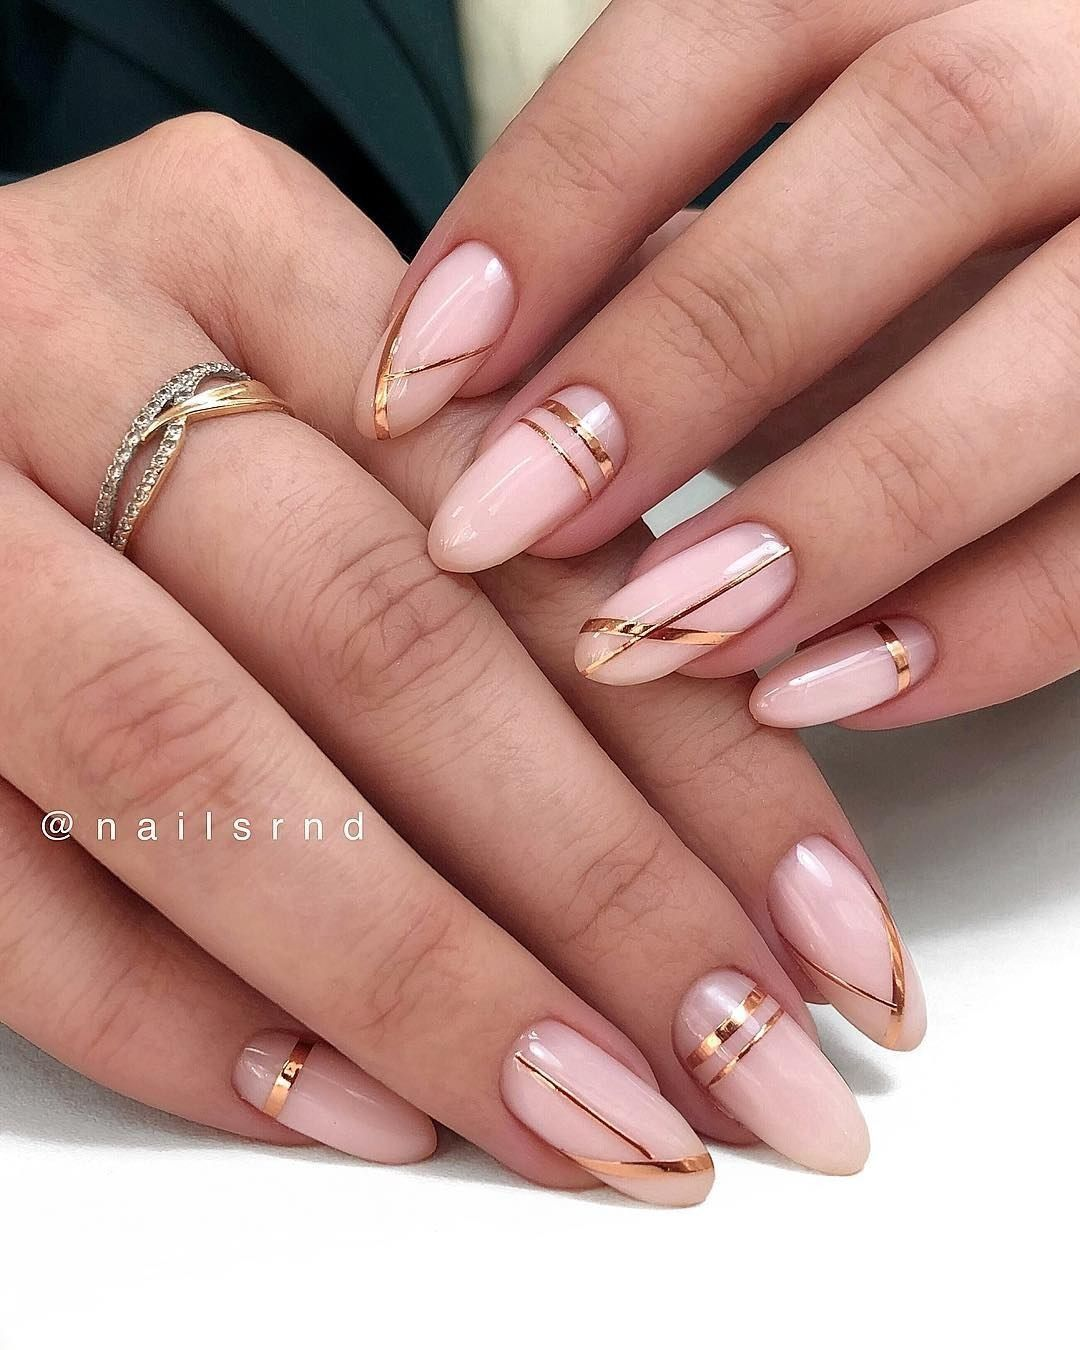 60 Cute Winter Nails Designs To Inspire Your Winter Mood Almond